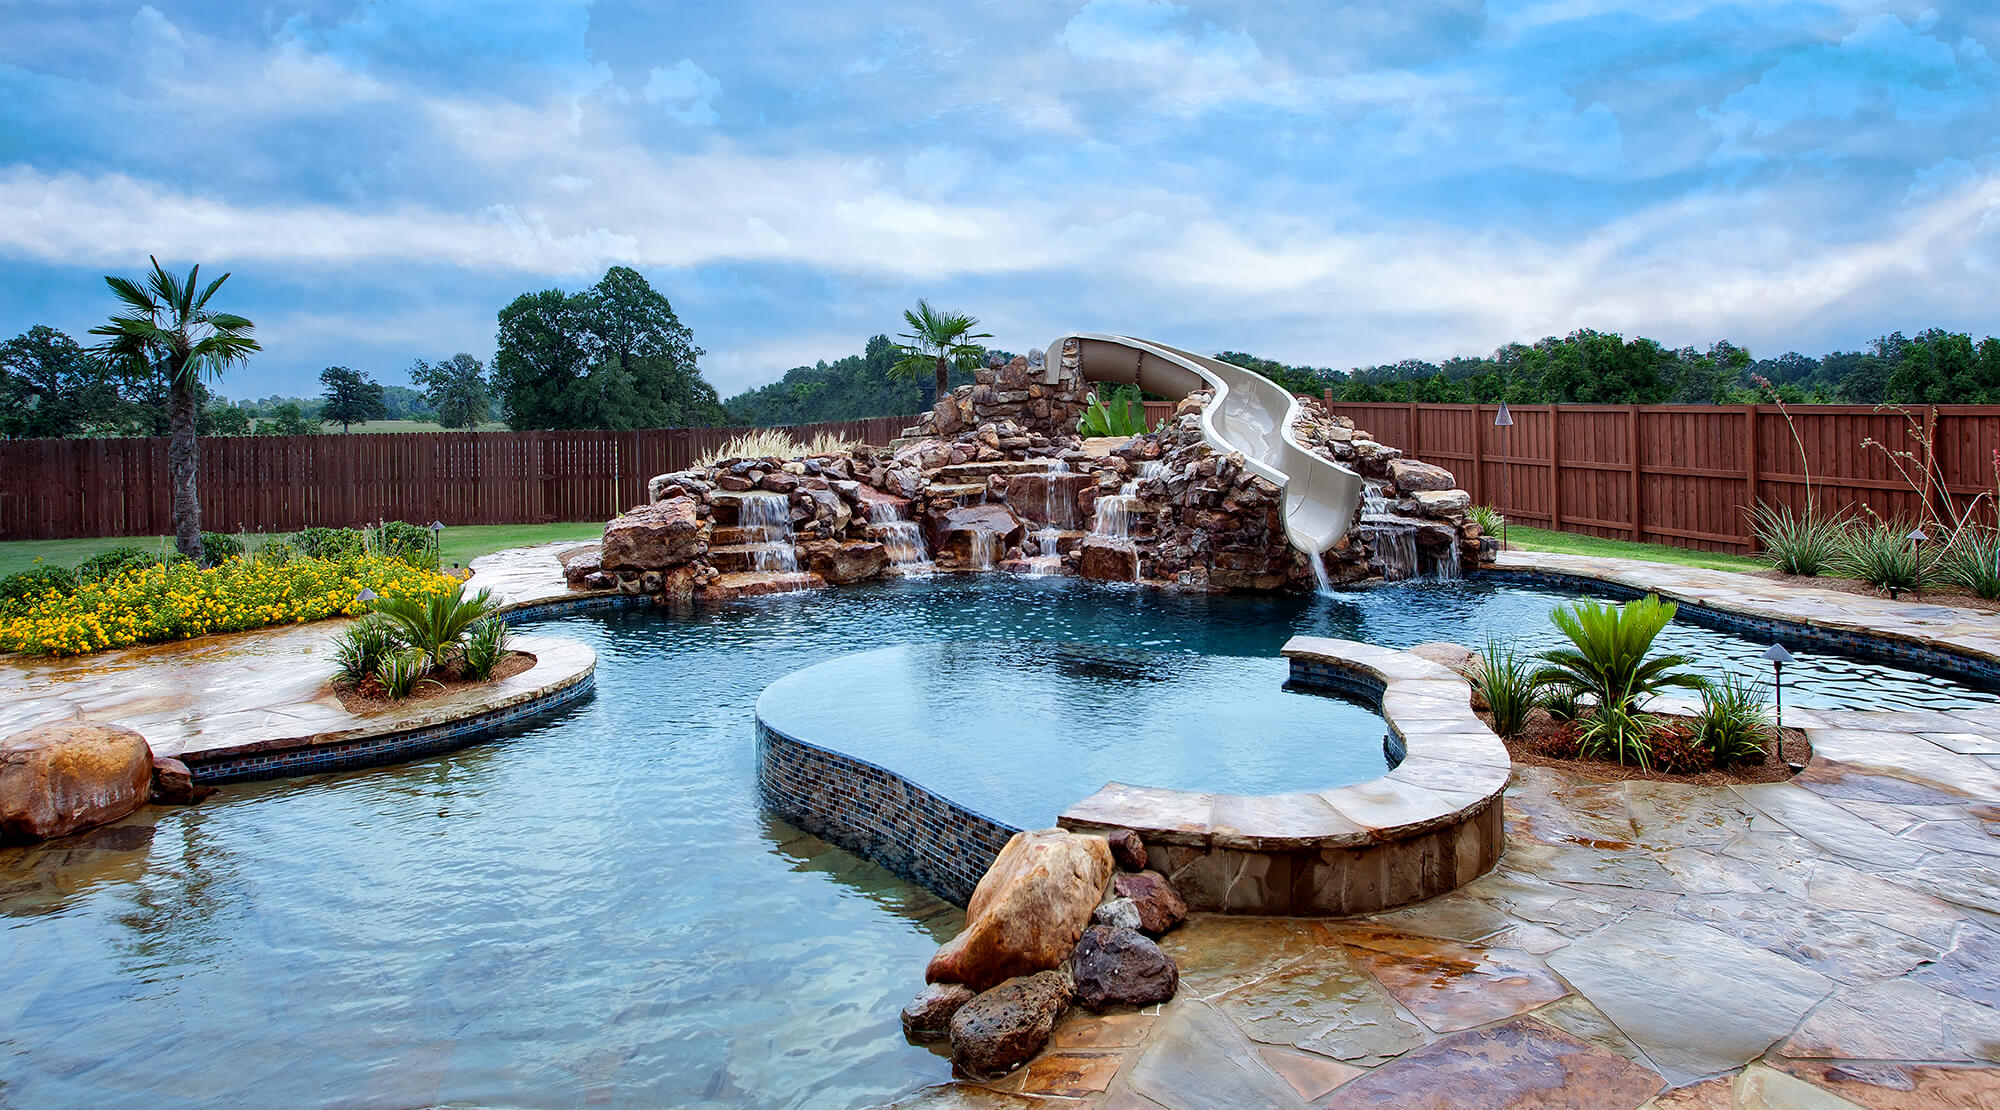 Swimming Pool Builders In Shreveport Amp Bossier City La